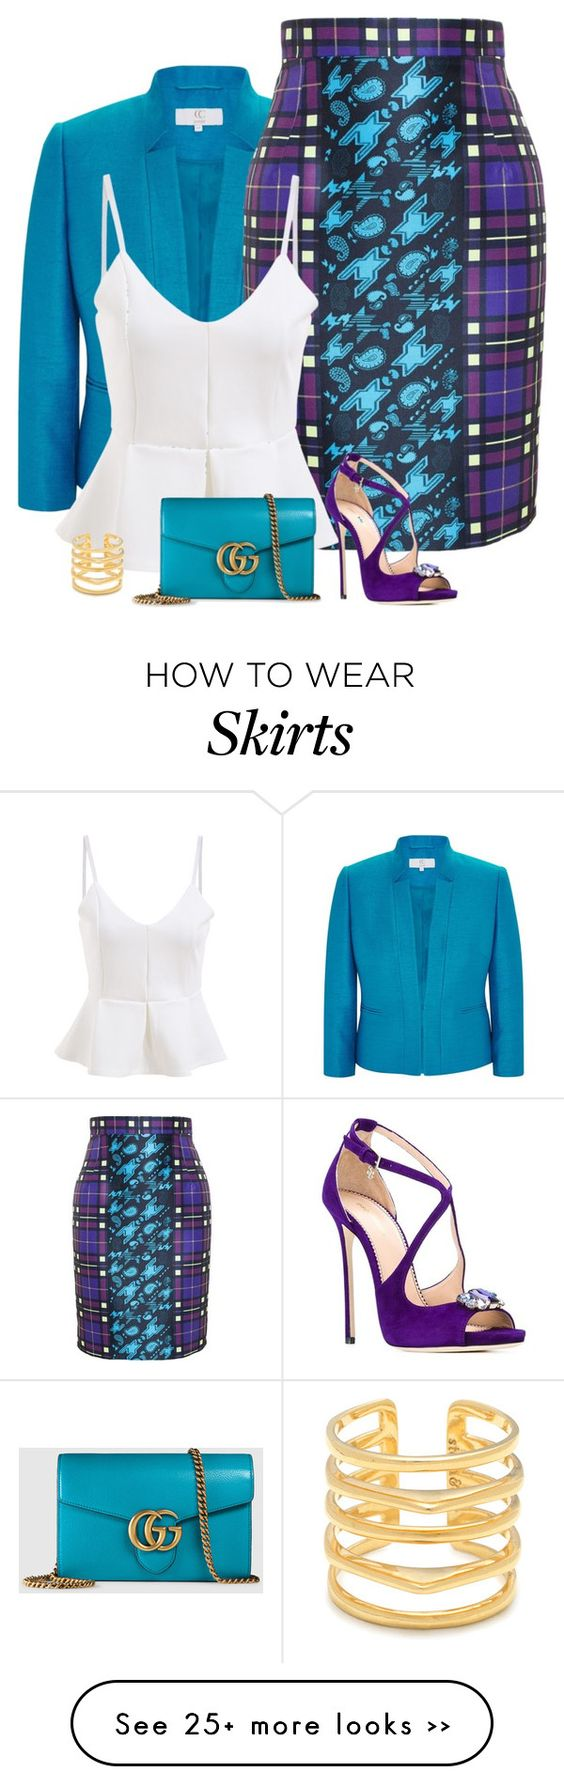 """statement skirt"" by divacrafts on Polyvore"